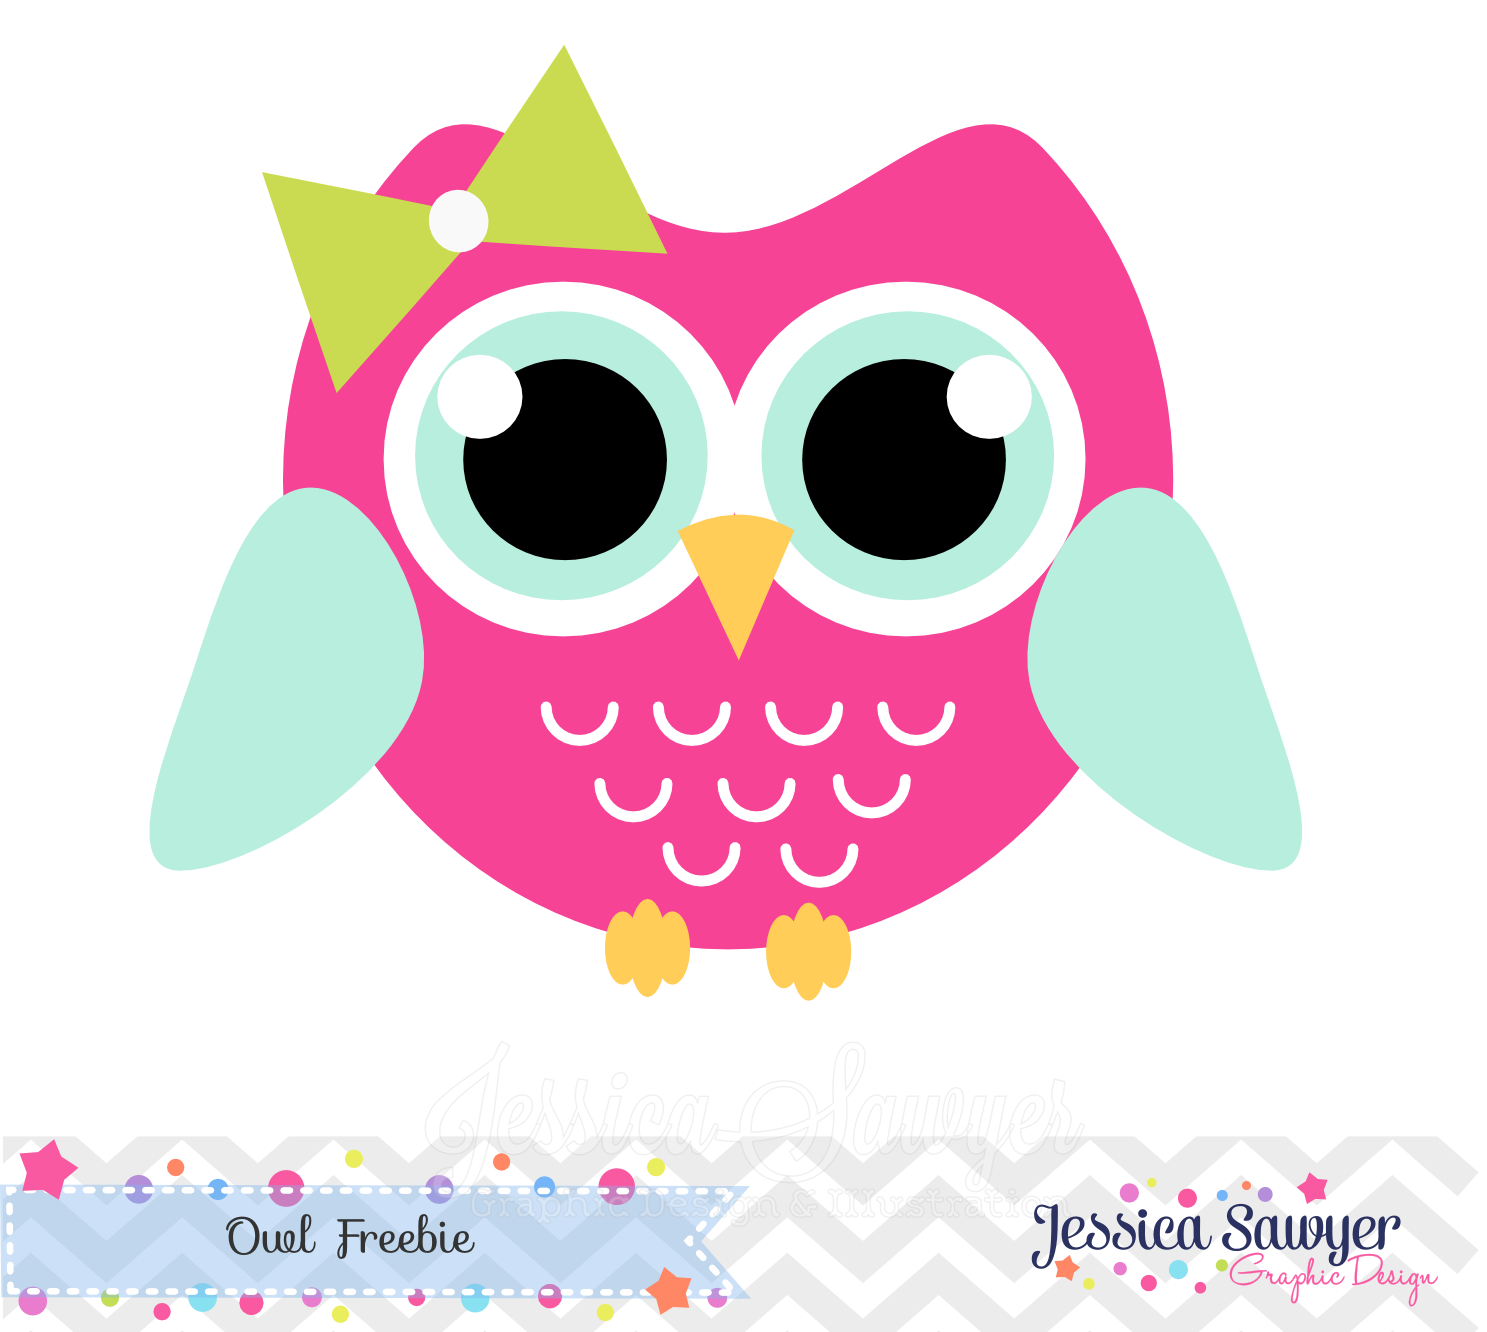 Drawn cake owl Clipart How Clipart to Sawyer